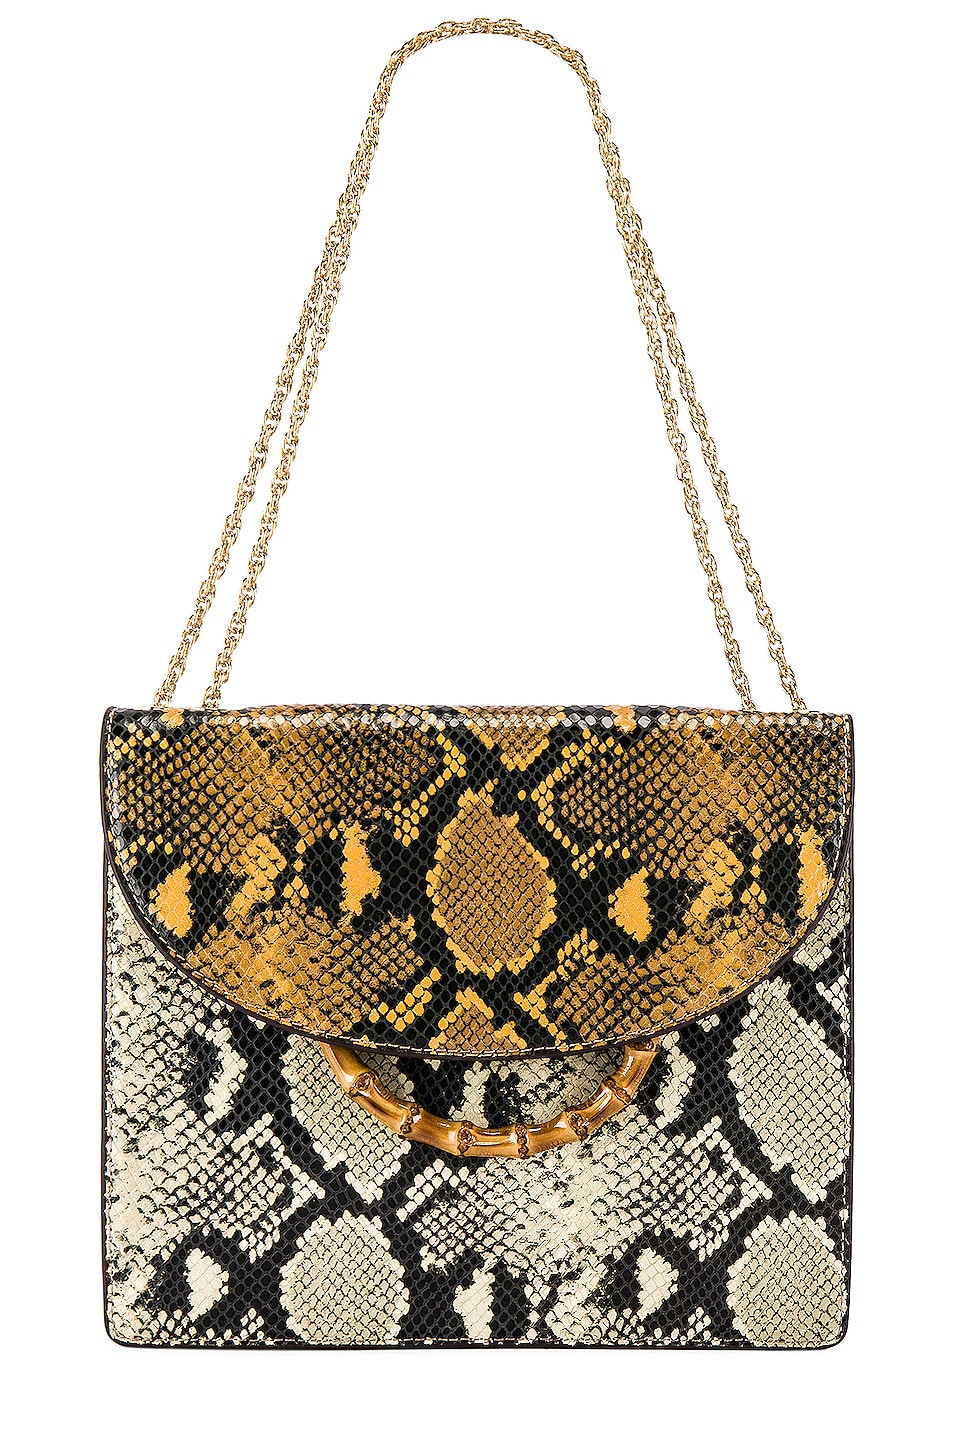 Loeffler Randall Marla Square Chain Bag in Amber & Sand